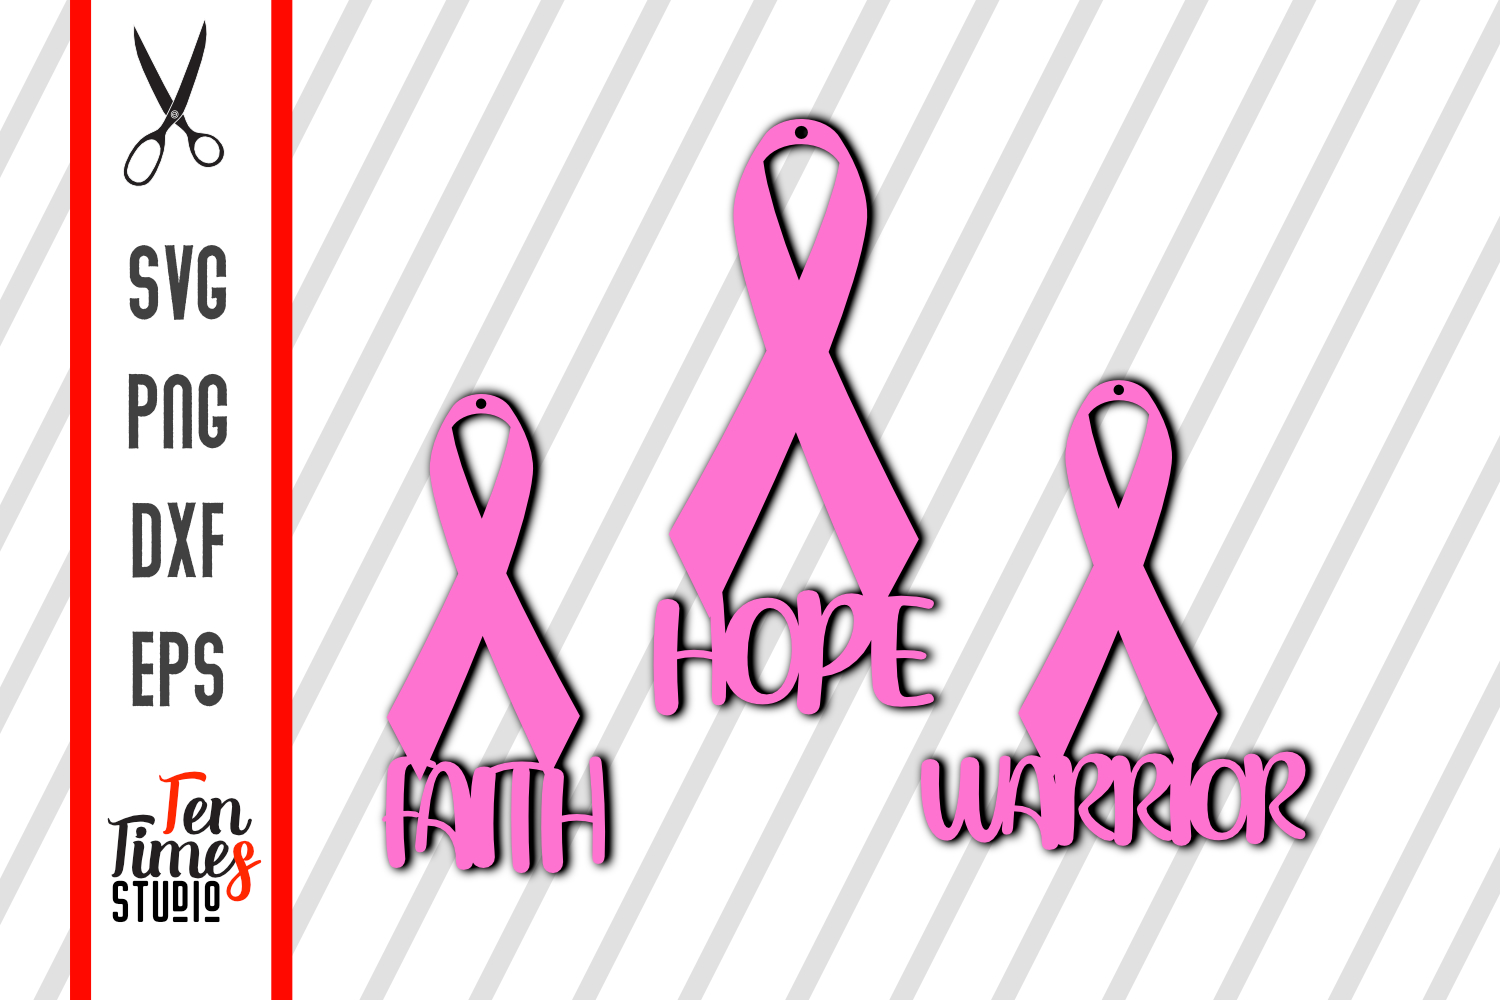 Download Free Breast Cancer Awareness Earrings Graphic By Ten Times Studio for Cricut Explore, Silhouette and other cutting machines.